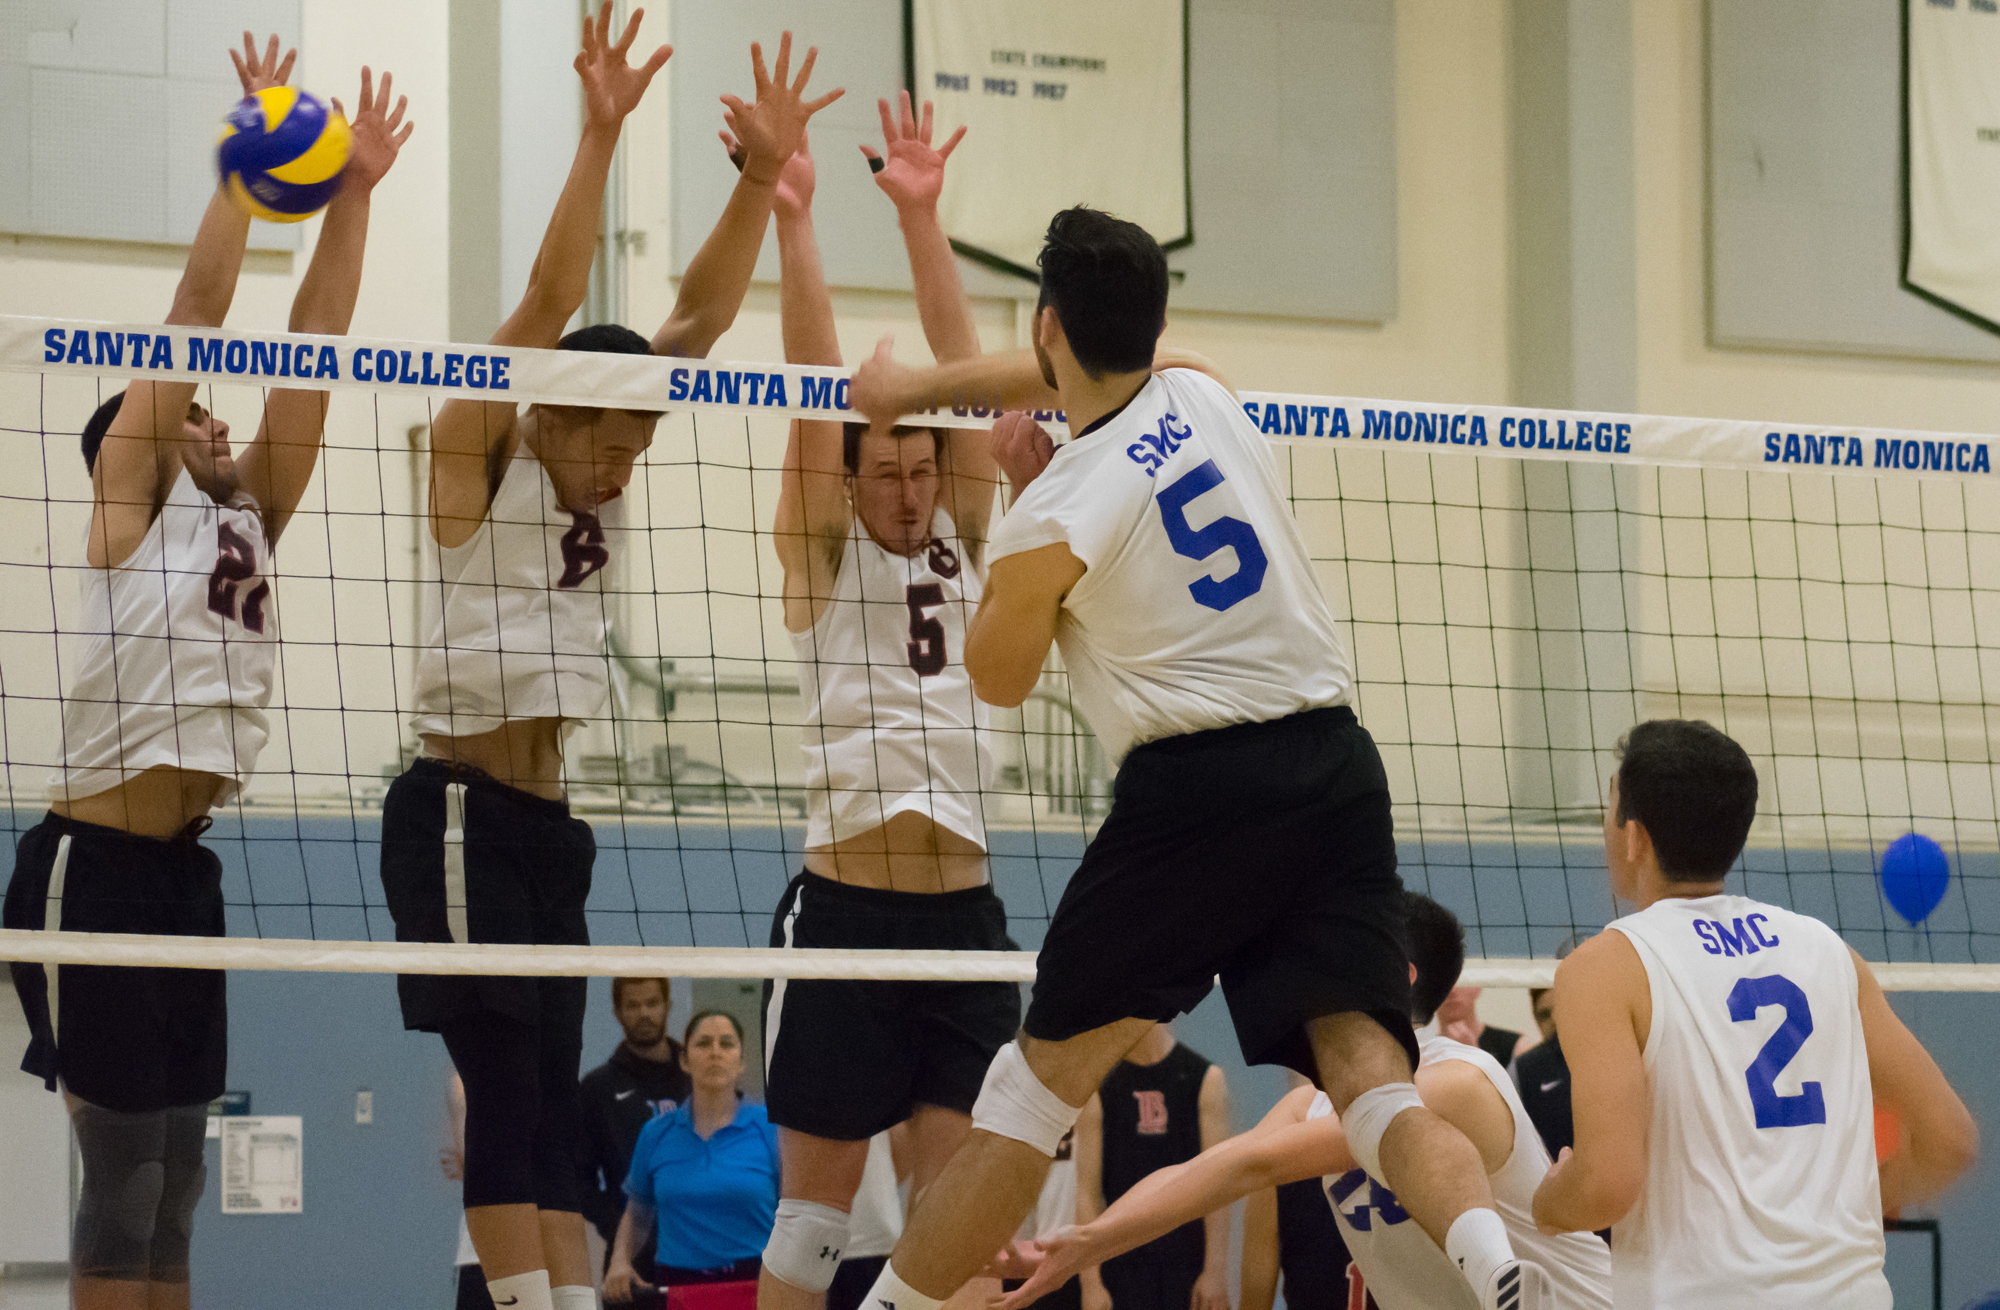 Santa Monica Corsairs sophomore and right-side hitter Andrew Dalmada (#5) spikes the ball against the Long Beach City College Vikings during their final home game of the season on Wednesday, April 12, 2018 in the Santa Monica College gym at Santa Monica, California. The game ended in a 3-1 loss for the Corsairs, giving them a 7-7 overall rating for the season with one game left. (Ethan Lauren/Corsair Photo)